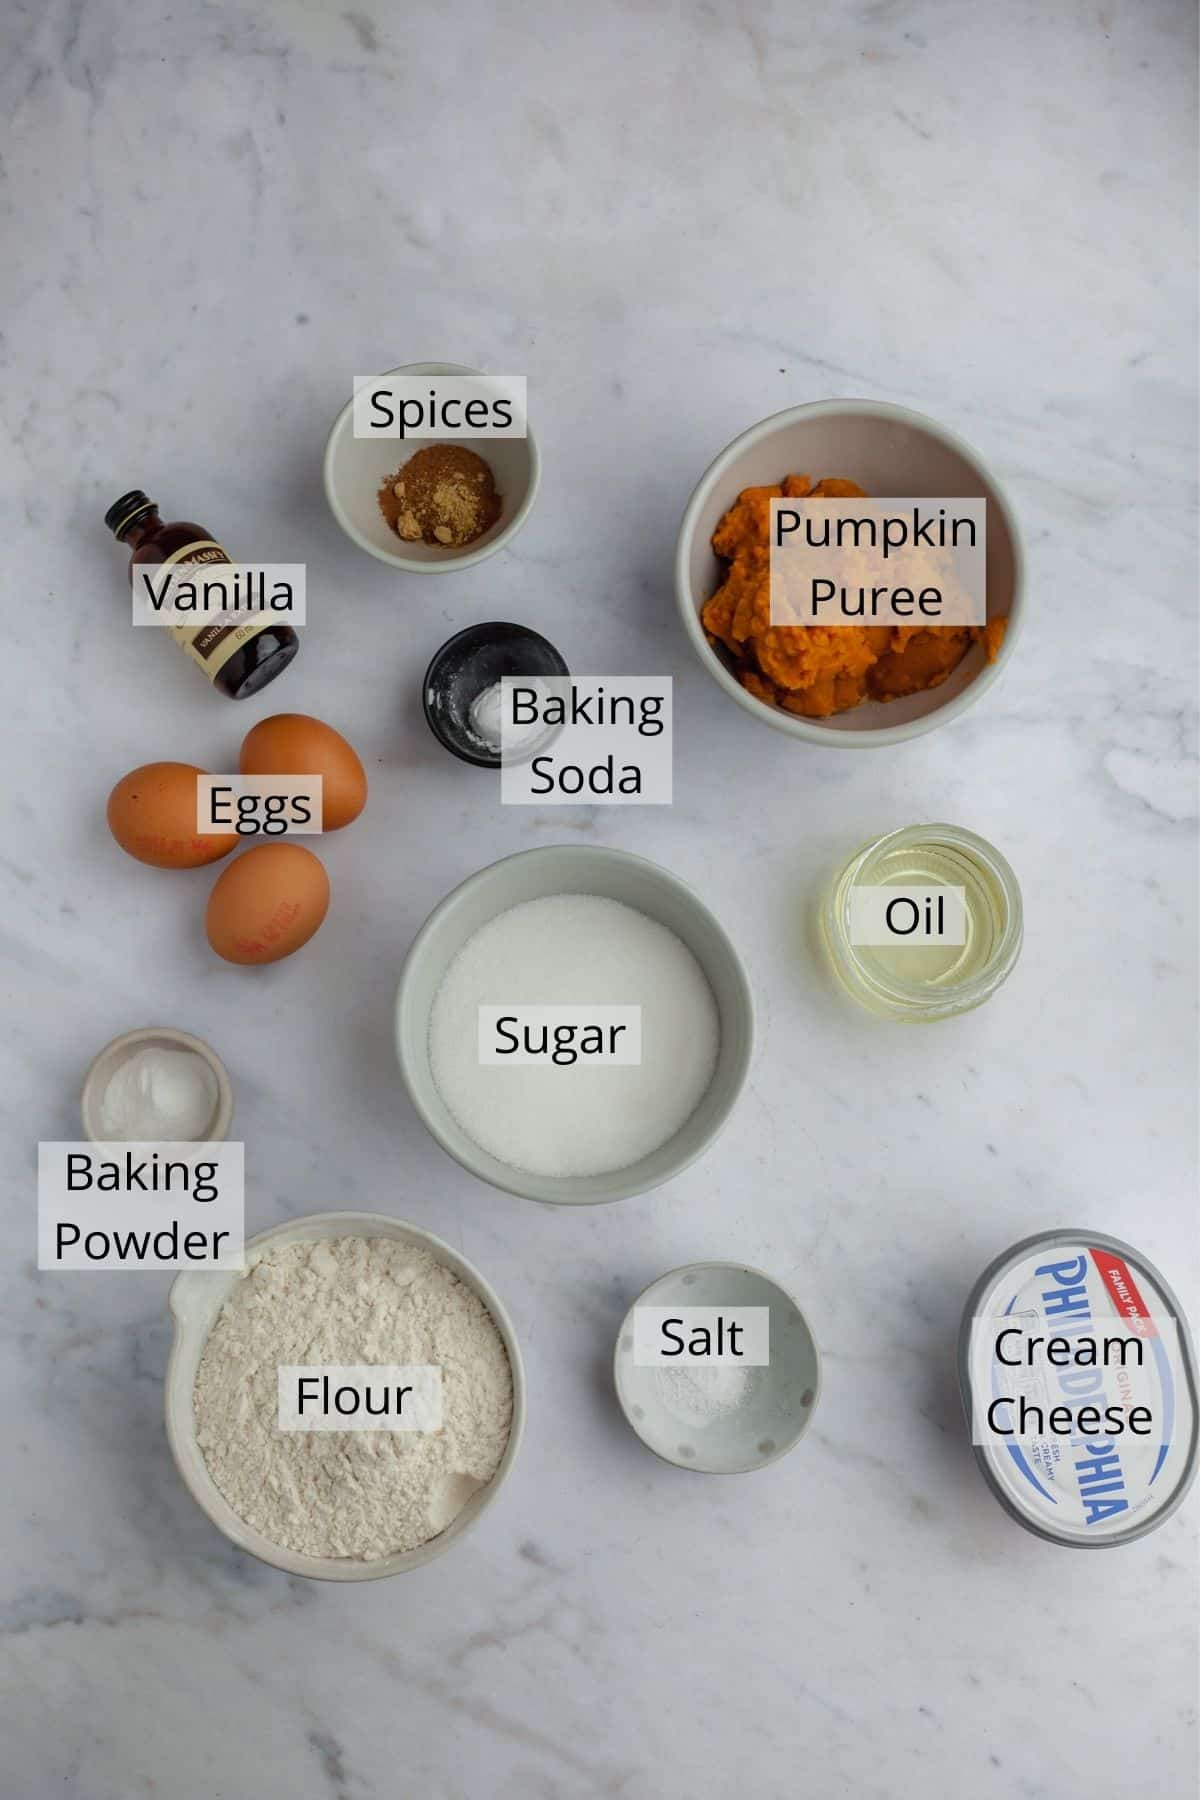 ingredients for cheesecake pumpkin bread weighed out in small bowls on a marble countertop